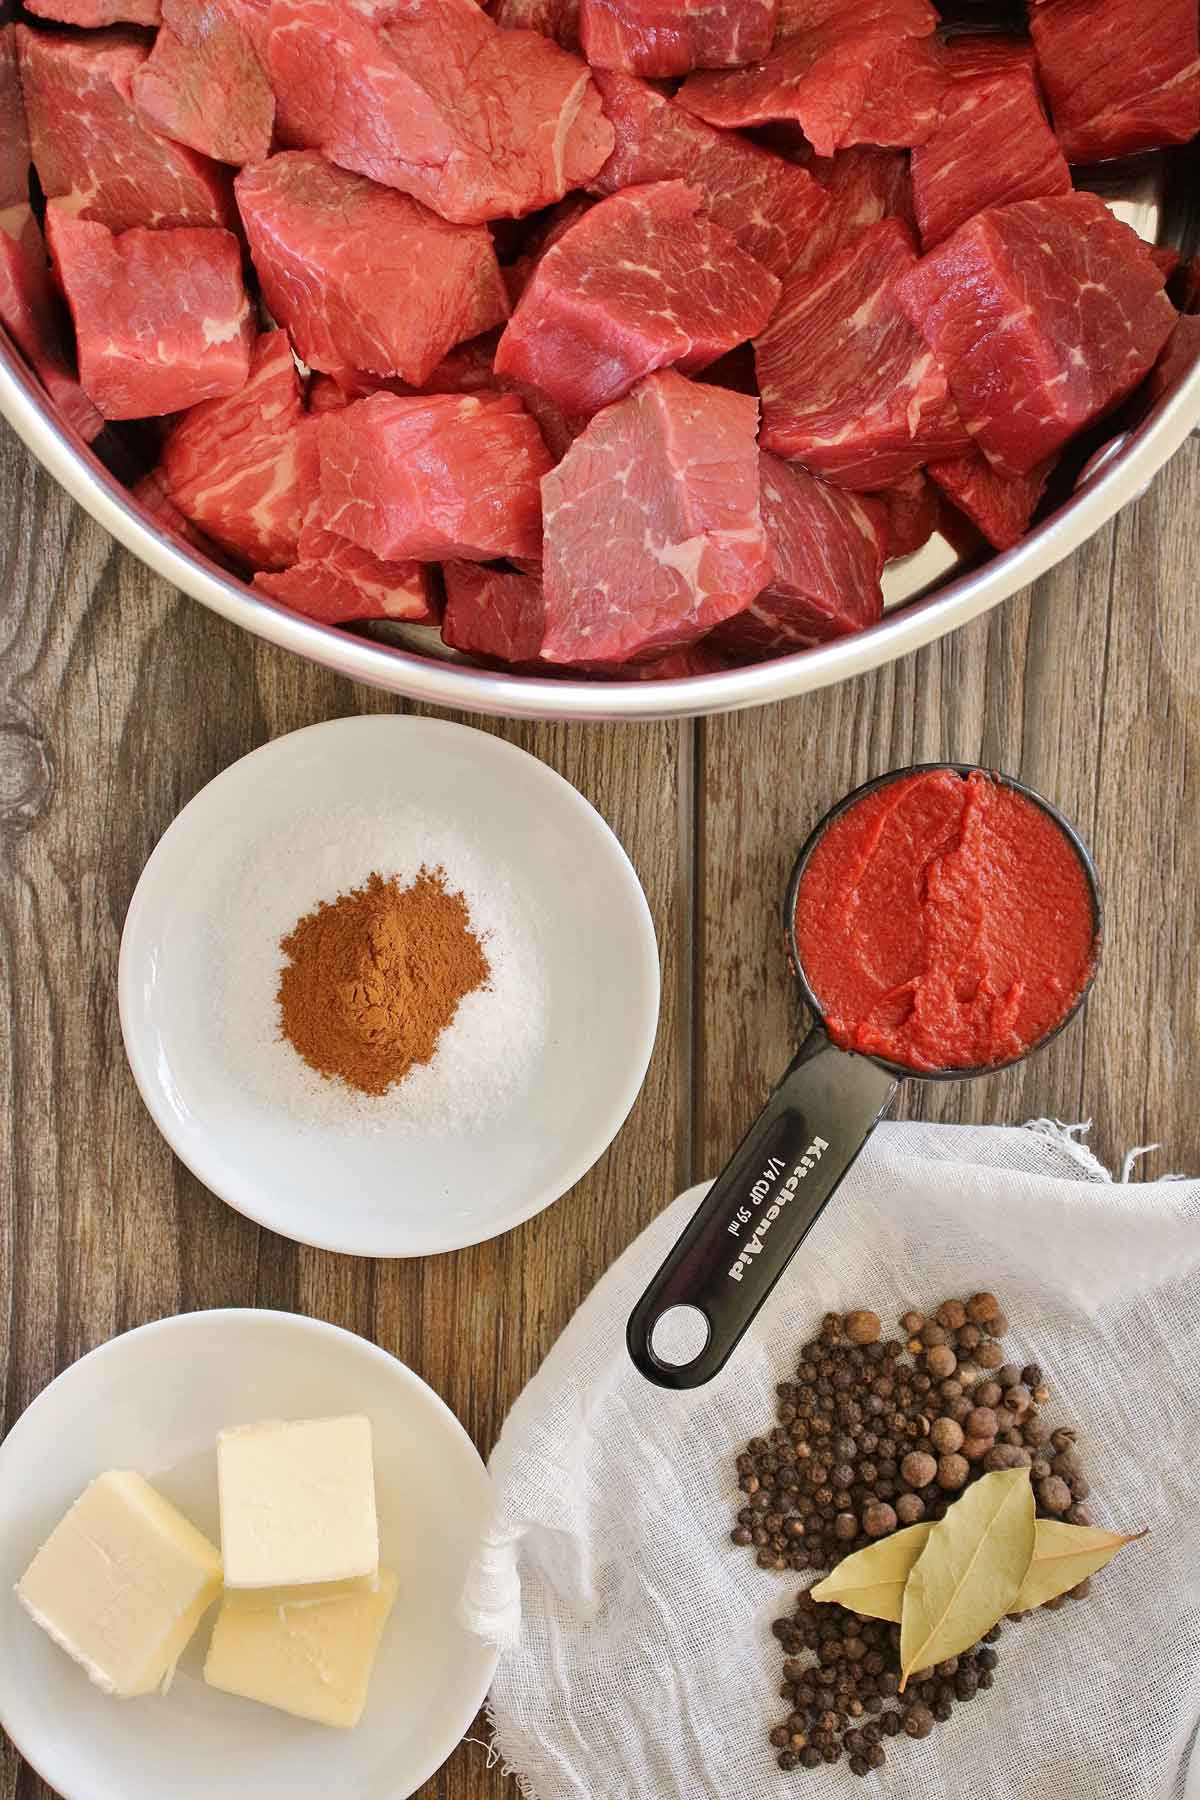 Cubes of raw beef in a pot, tomato paste, butter, and spices.